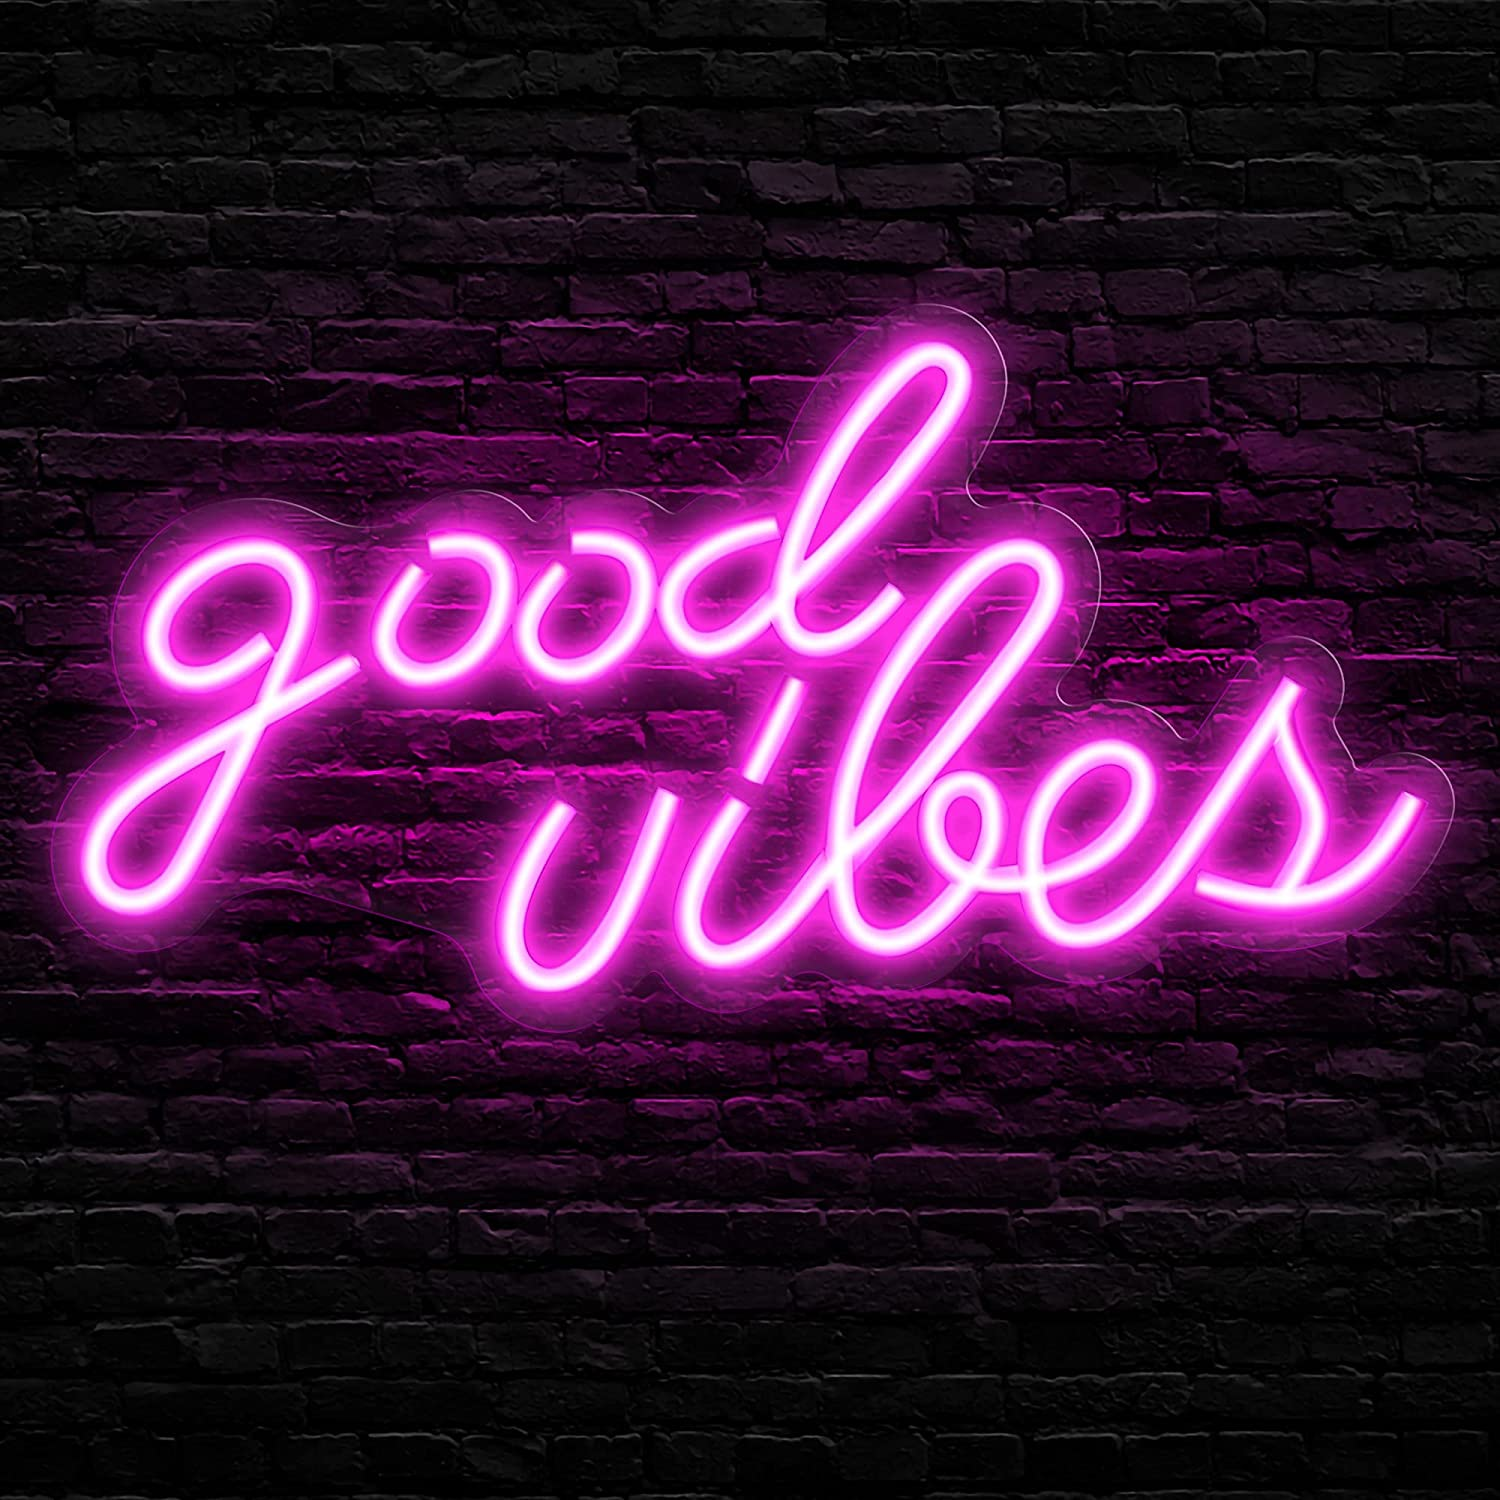 """Olekki Neon Sign Pink """"Good Vibes"""" Led Signs - Neon Lights for Bedroom, Neon Wall Signs, Game Room Decor, Party, Bar Neon Decor (16.1 x 8.3 inch)"""